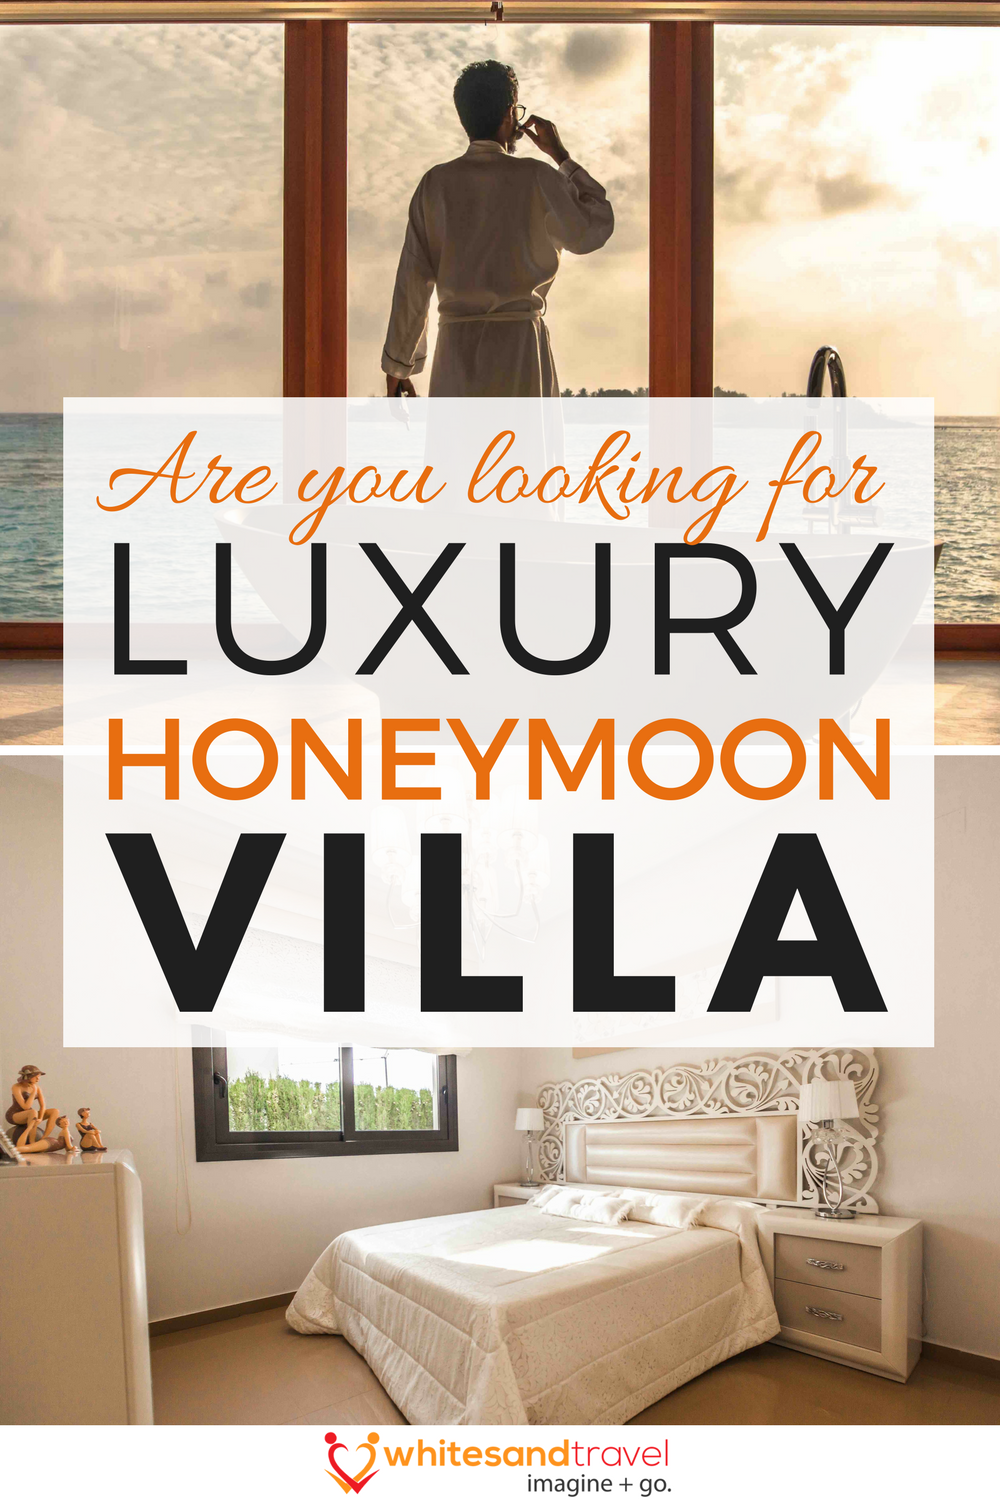 Create a world of memories in a luxury villa